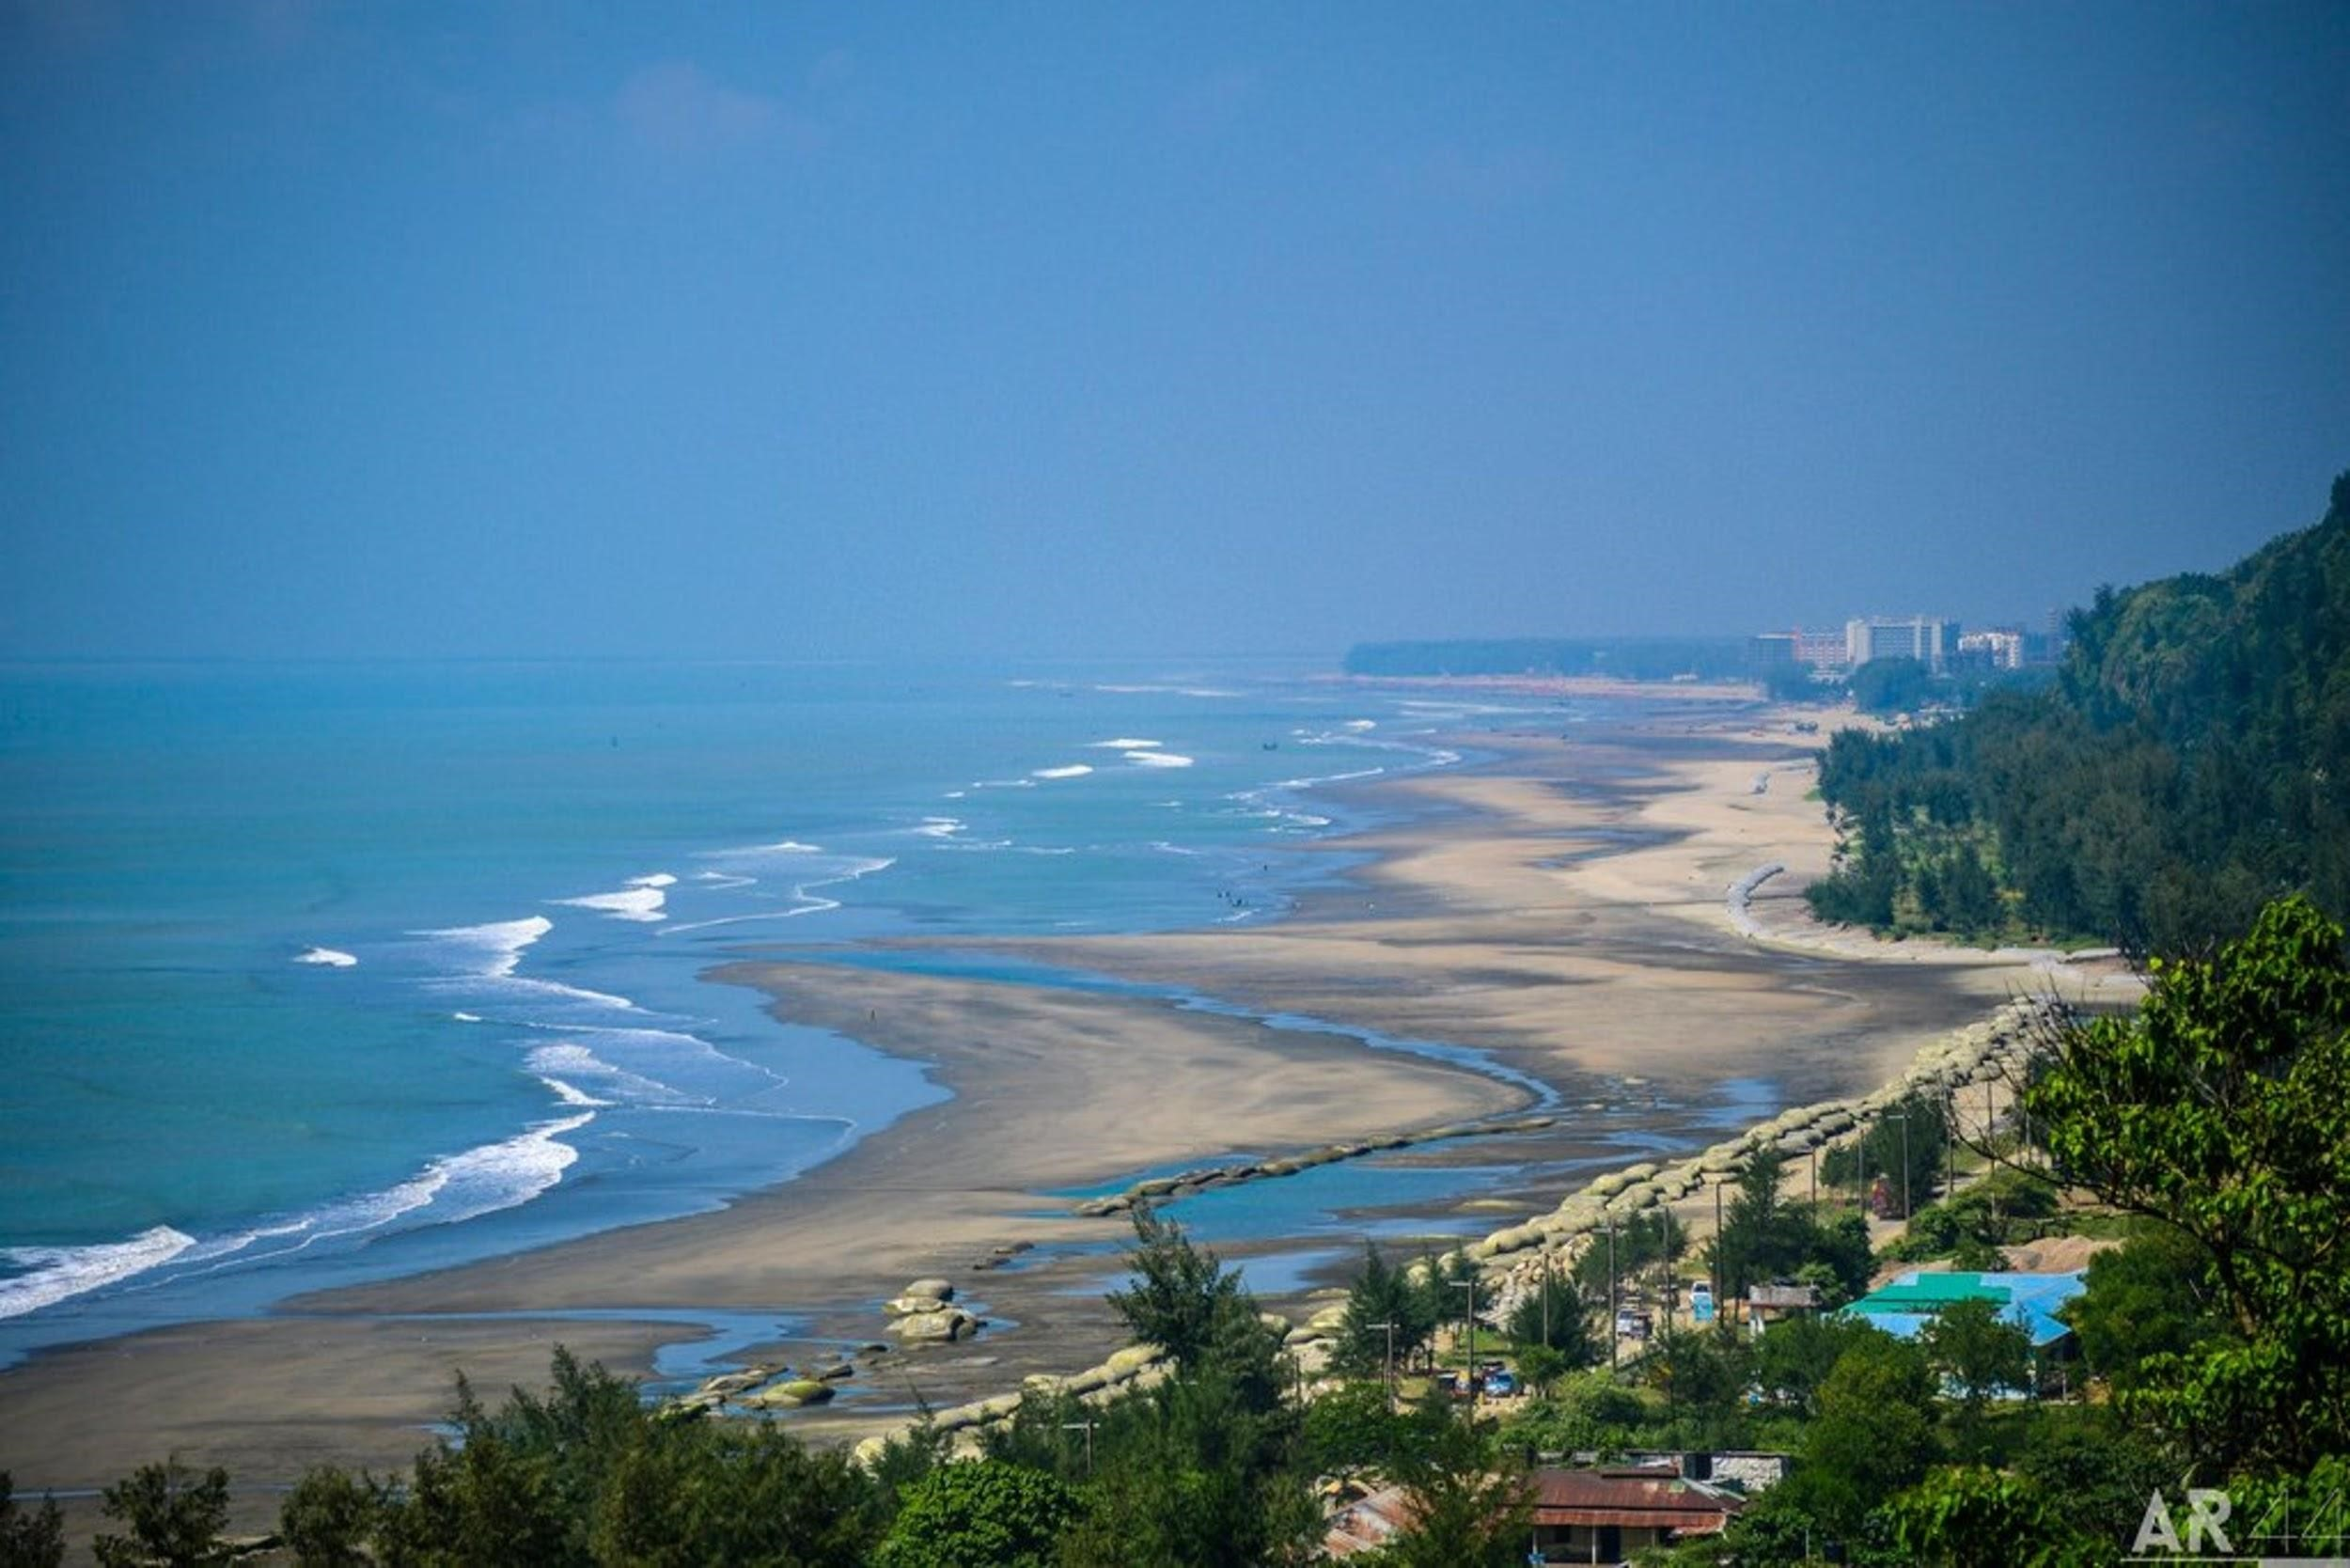 Best 5 Places to Visit in Cox's Bazar  Cox's Bazar Travel guide 2021